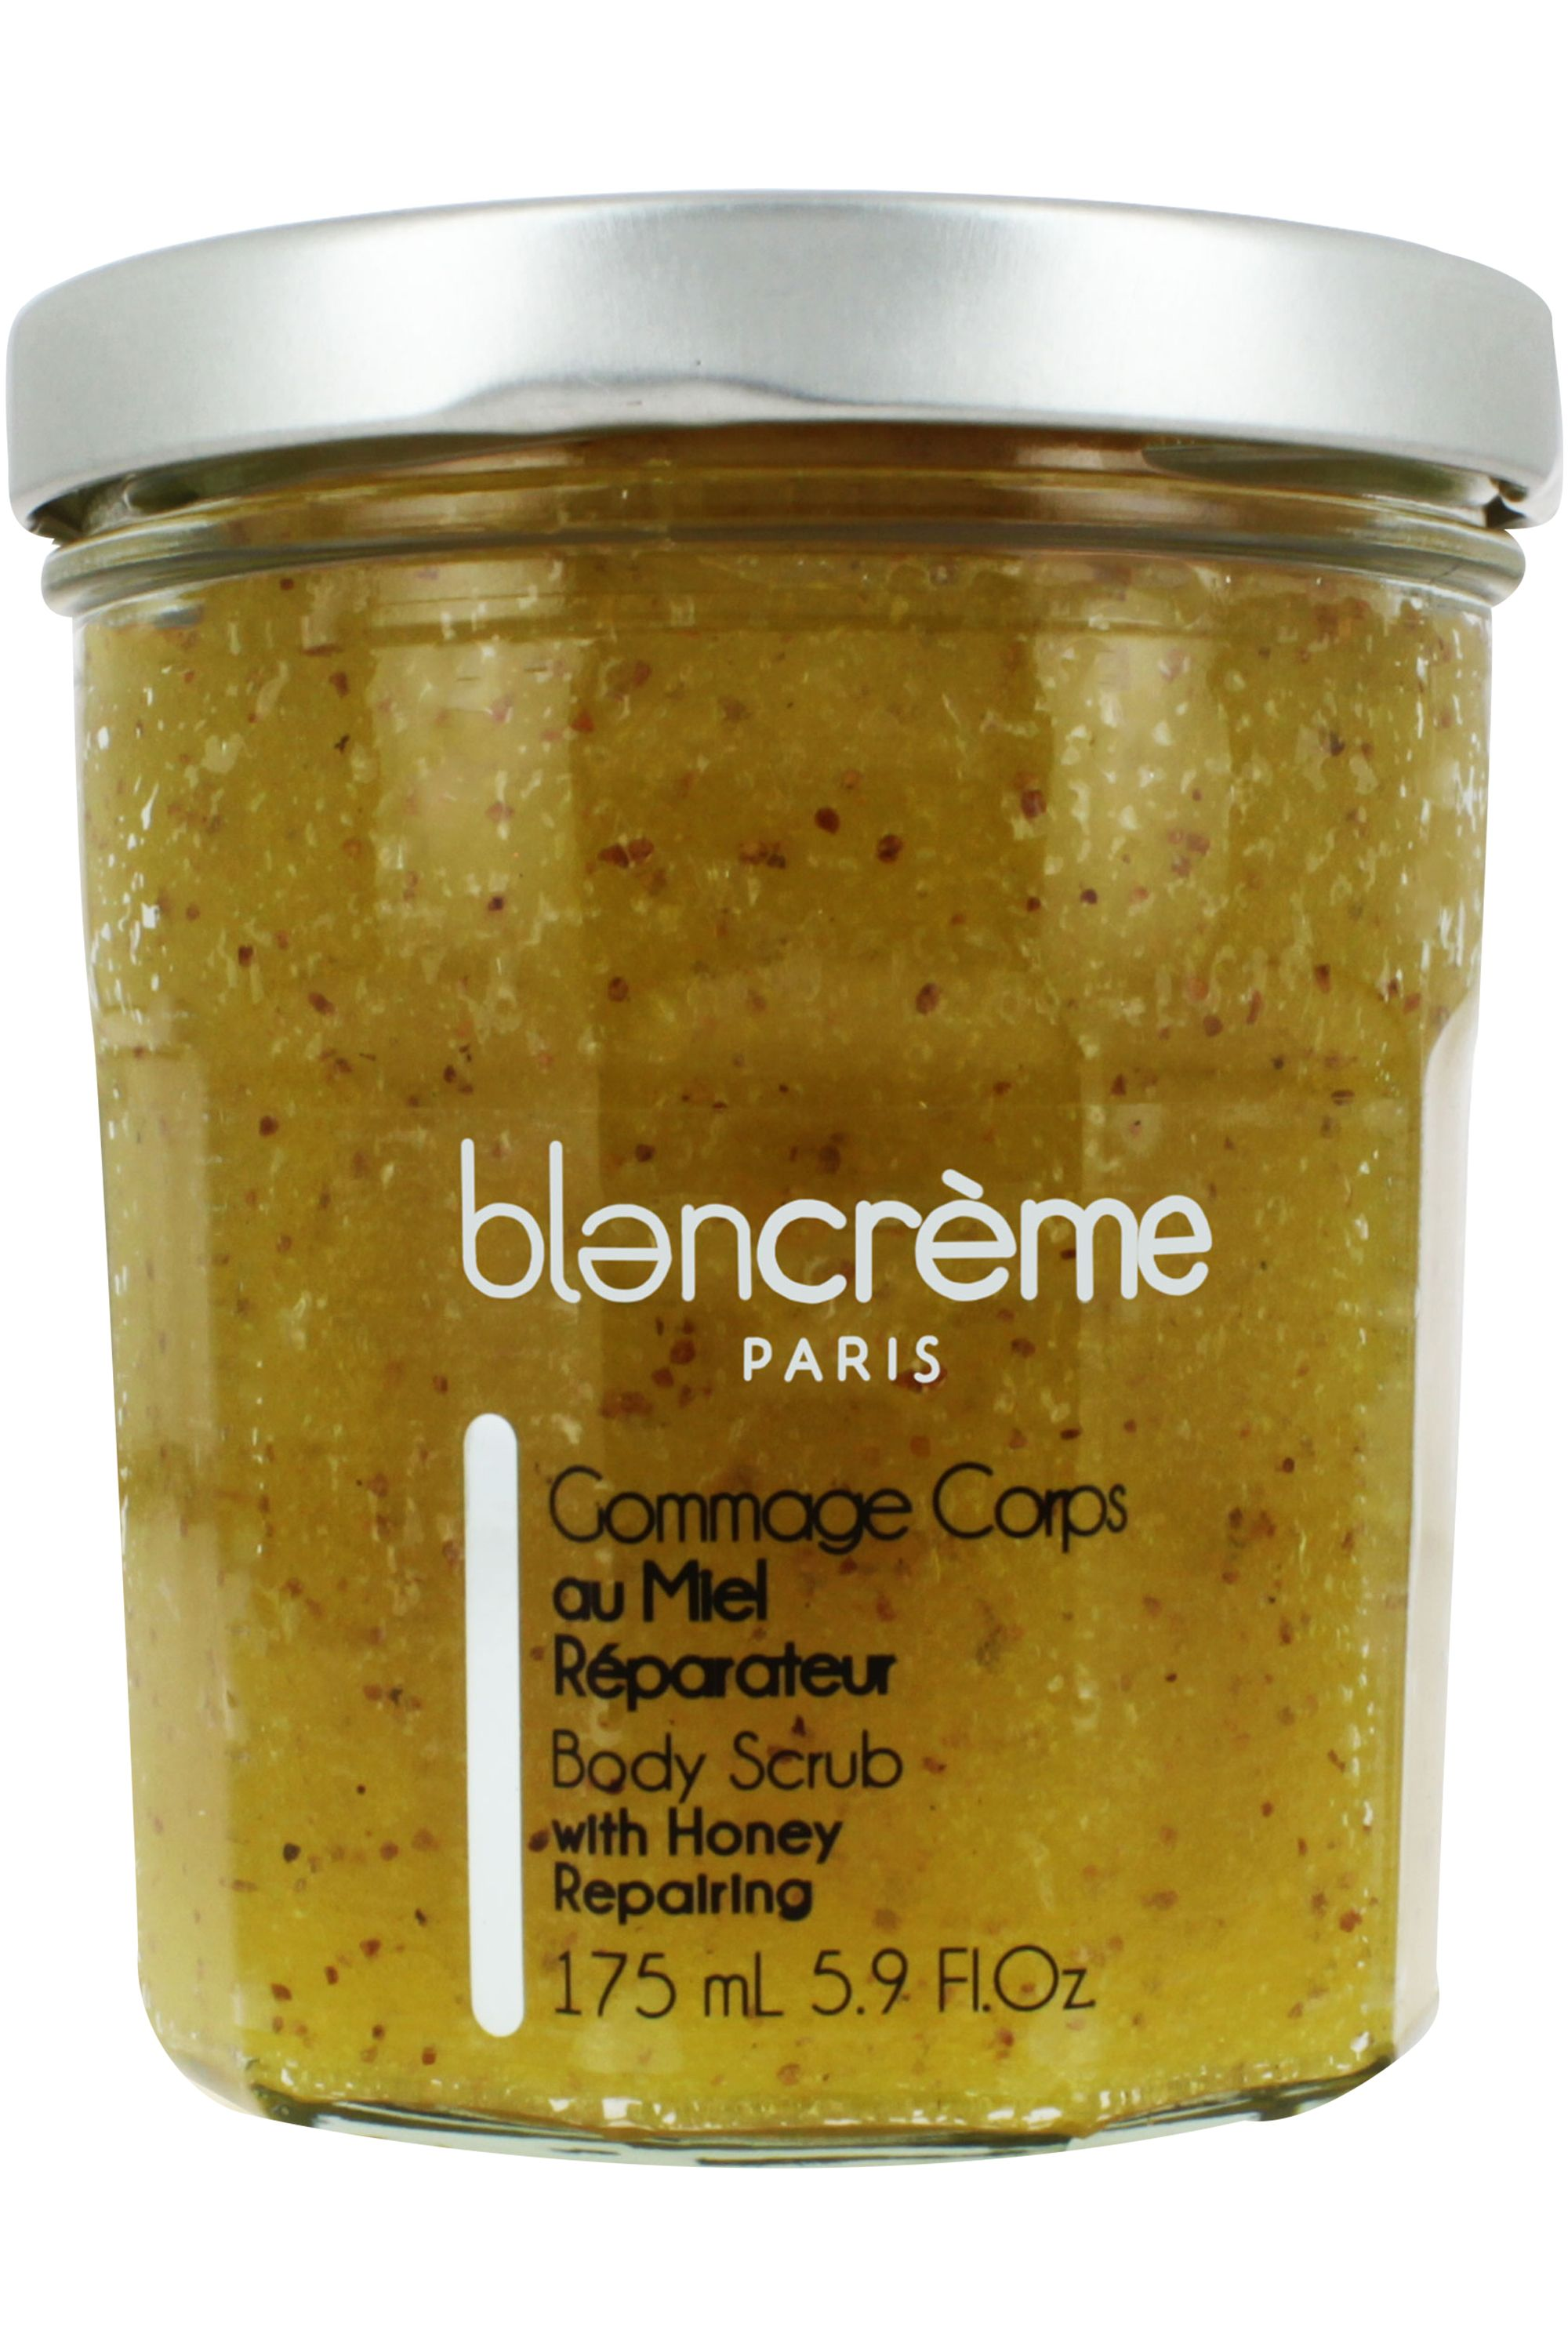 Blissim : Blancrème - Gommage Corps Miel - Gommage Corps Miel